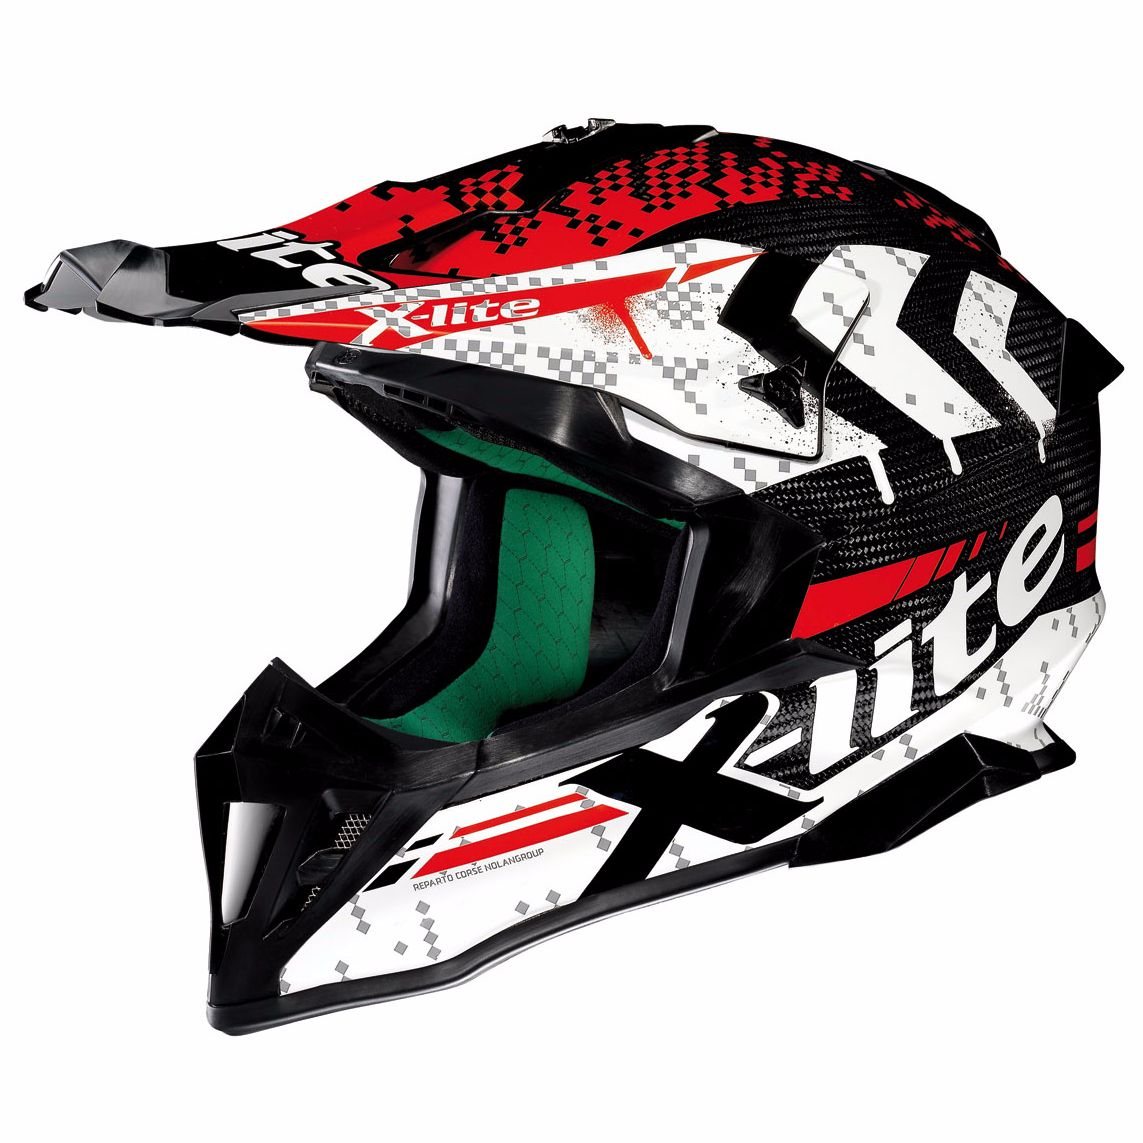 Casque Cross X-lite X-502 Ultra Carbon - Nac-nac Carbon 3